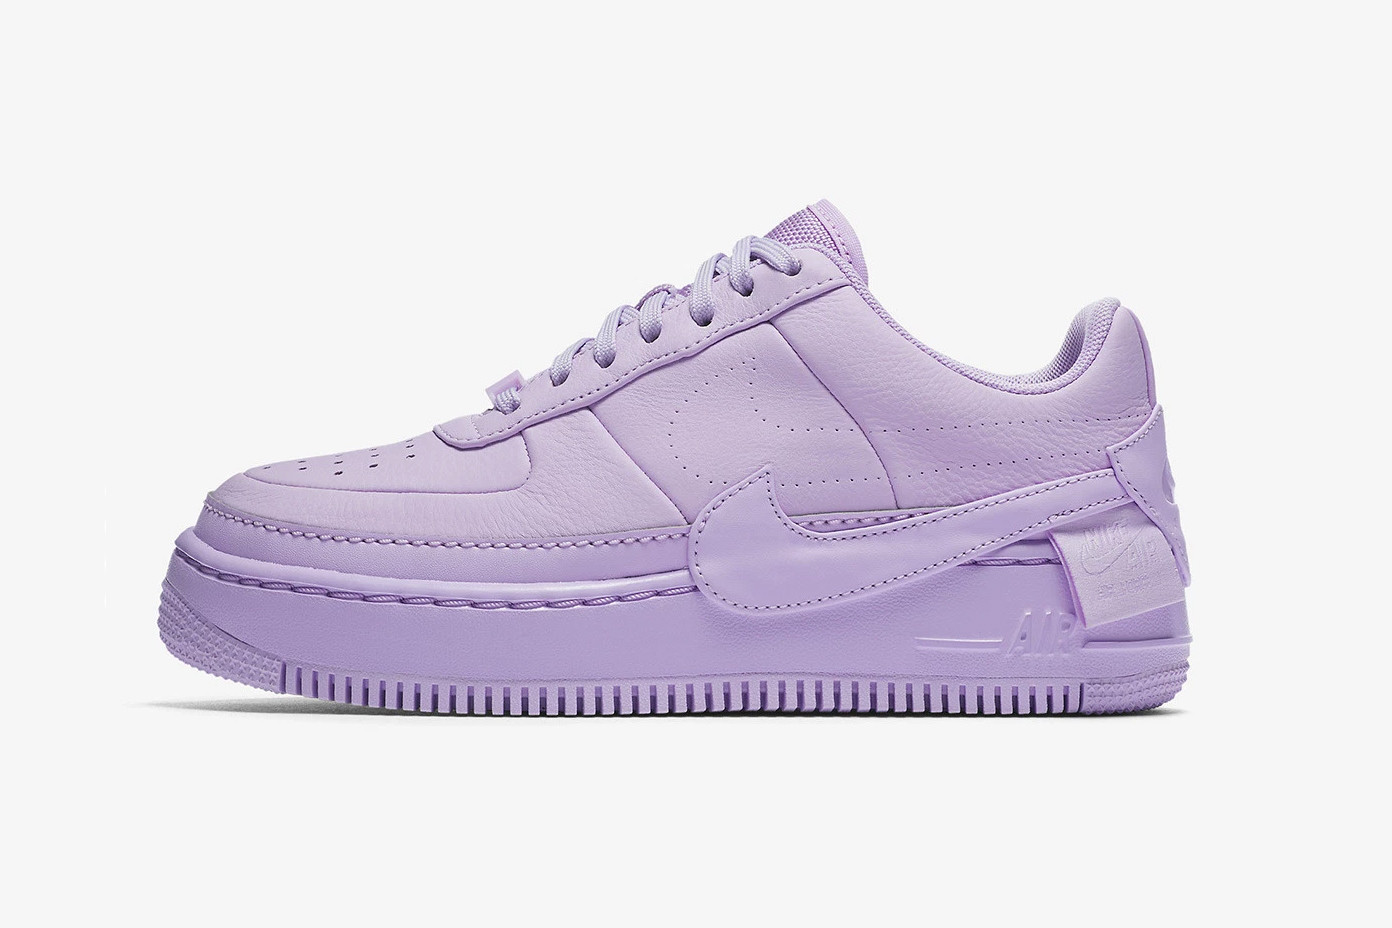 Nike Air Force 1 Low JESTER XX in